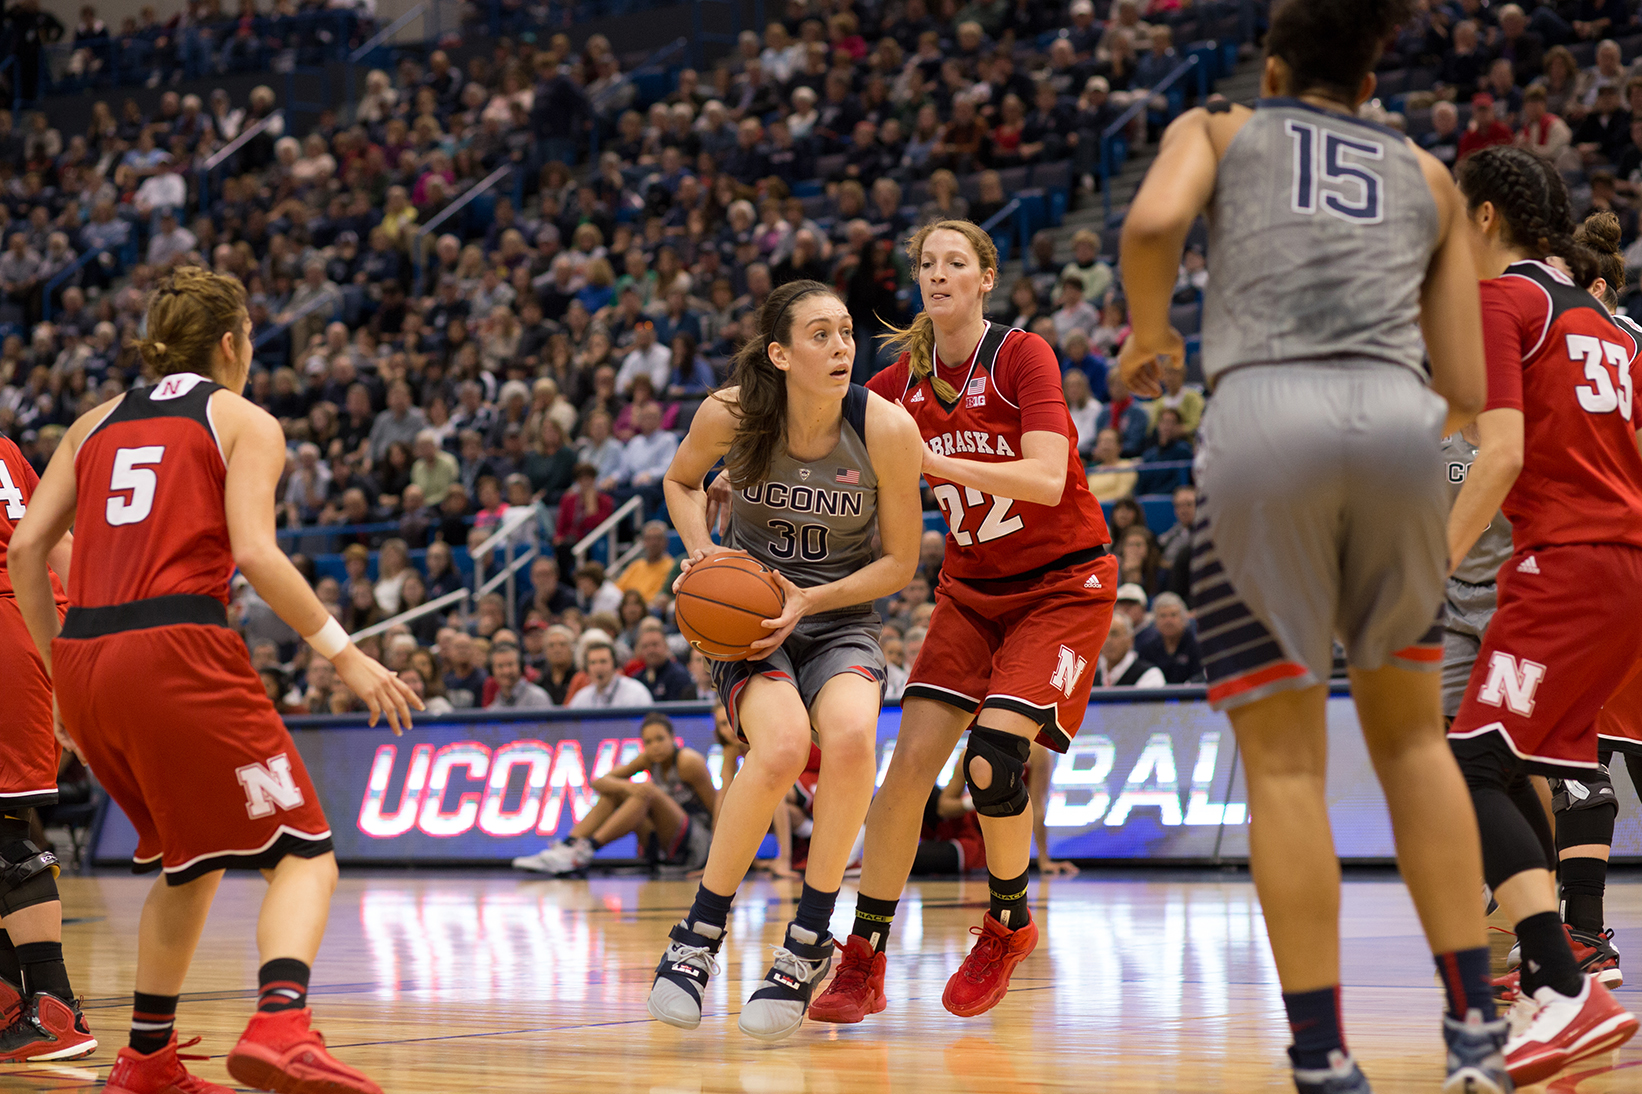 Senior forward Breanna Stewart looks for a shot during UConn's 88-46 victory over Nebraska. Stewart has been named American Conference Player of the Week twice already this season. (Jackson Haigis/The Daily Campus).